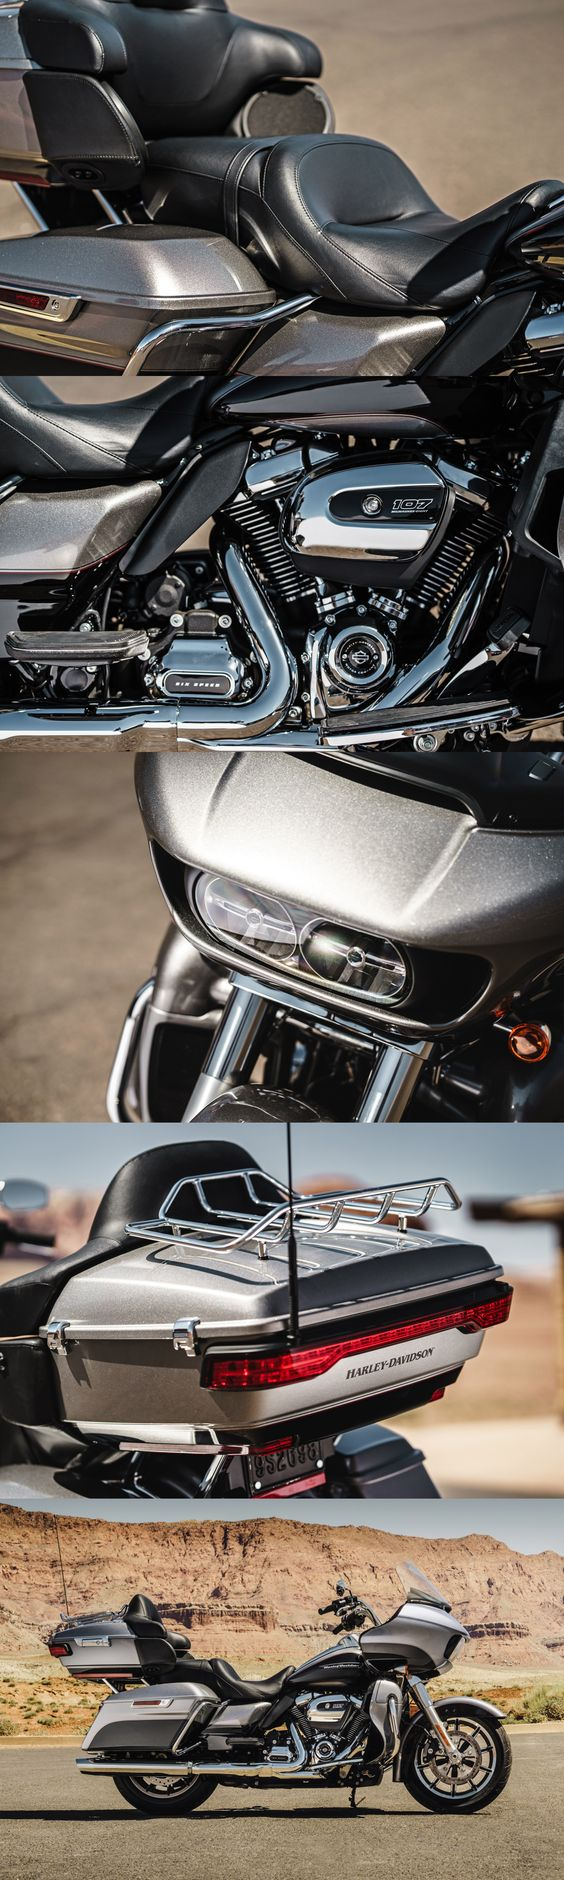 Times have never been better for the riders who put on the most miles. Get behind the frame-mounted shark nose fairing on the Road Glide Ultra and you'll know why. | 2017 Harley-Davidson Road Glide Ultra